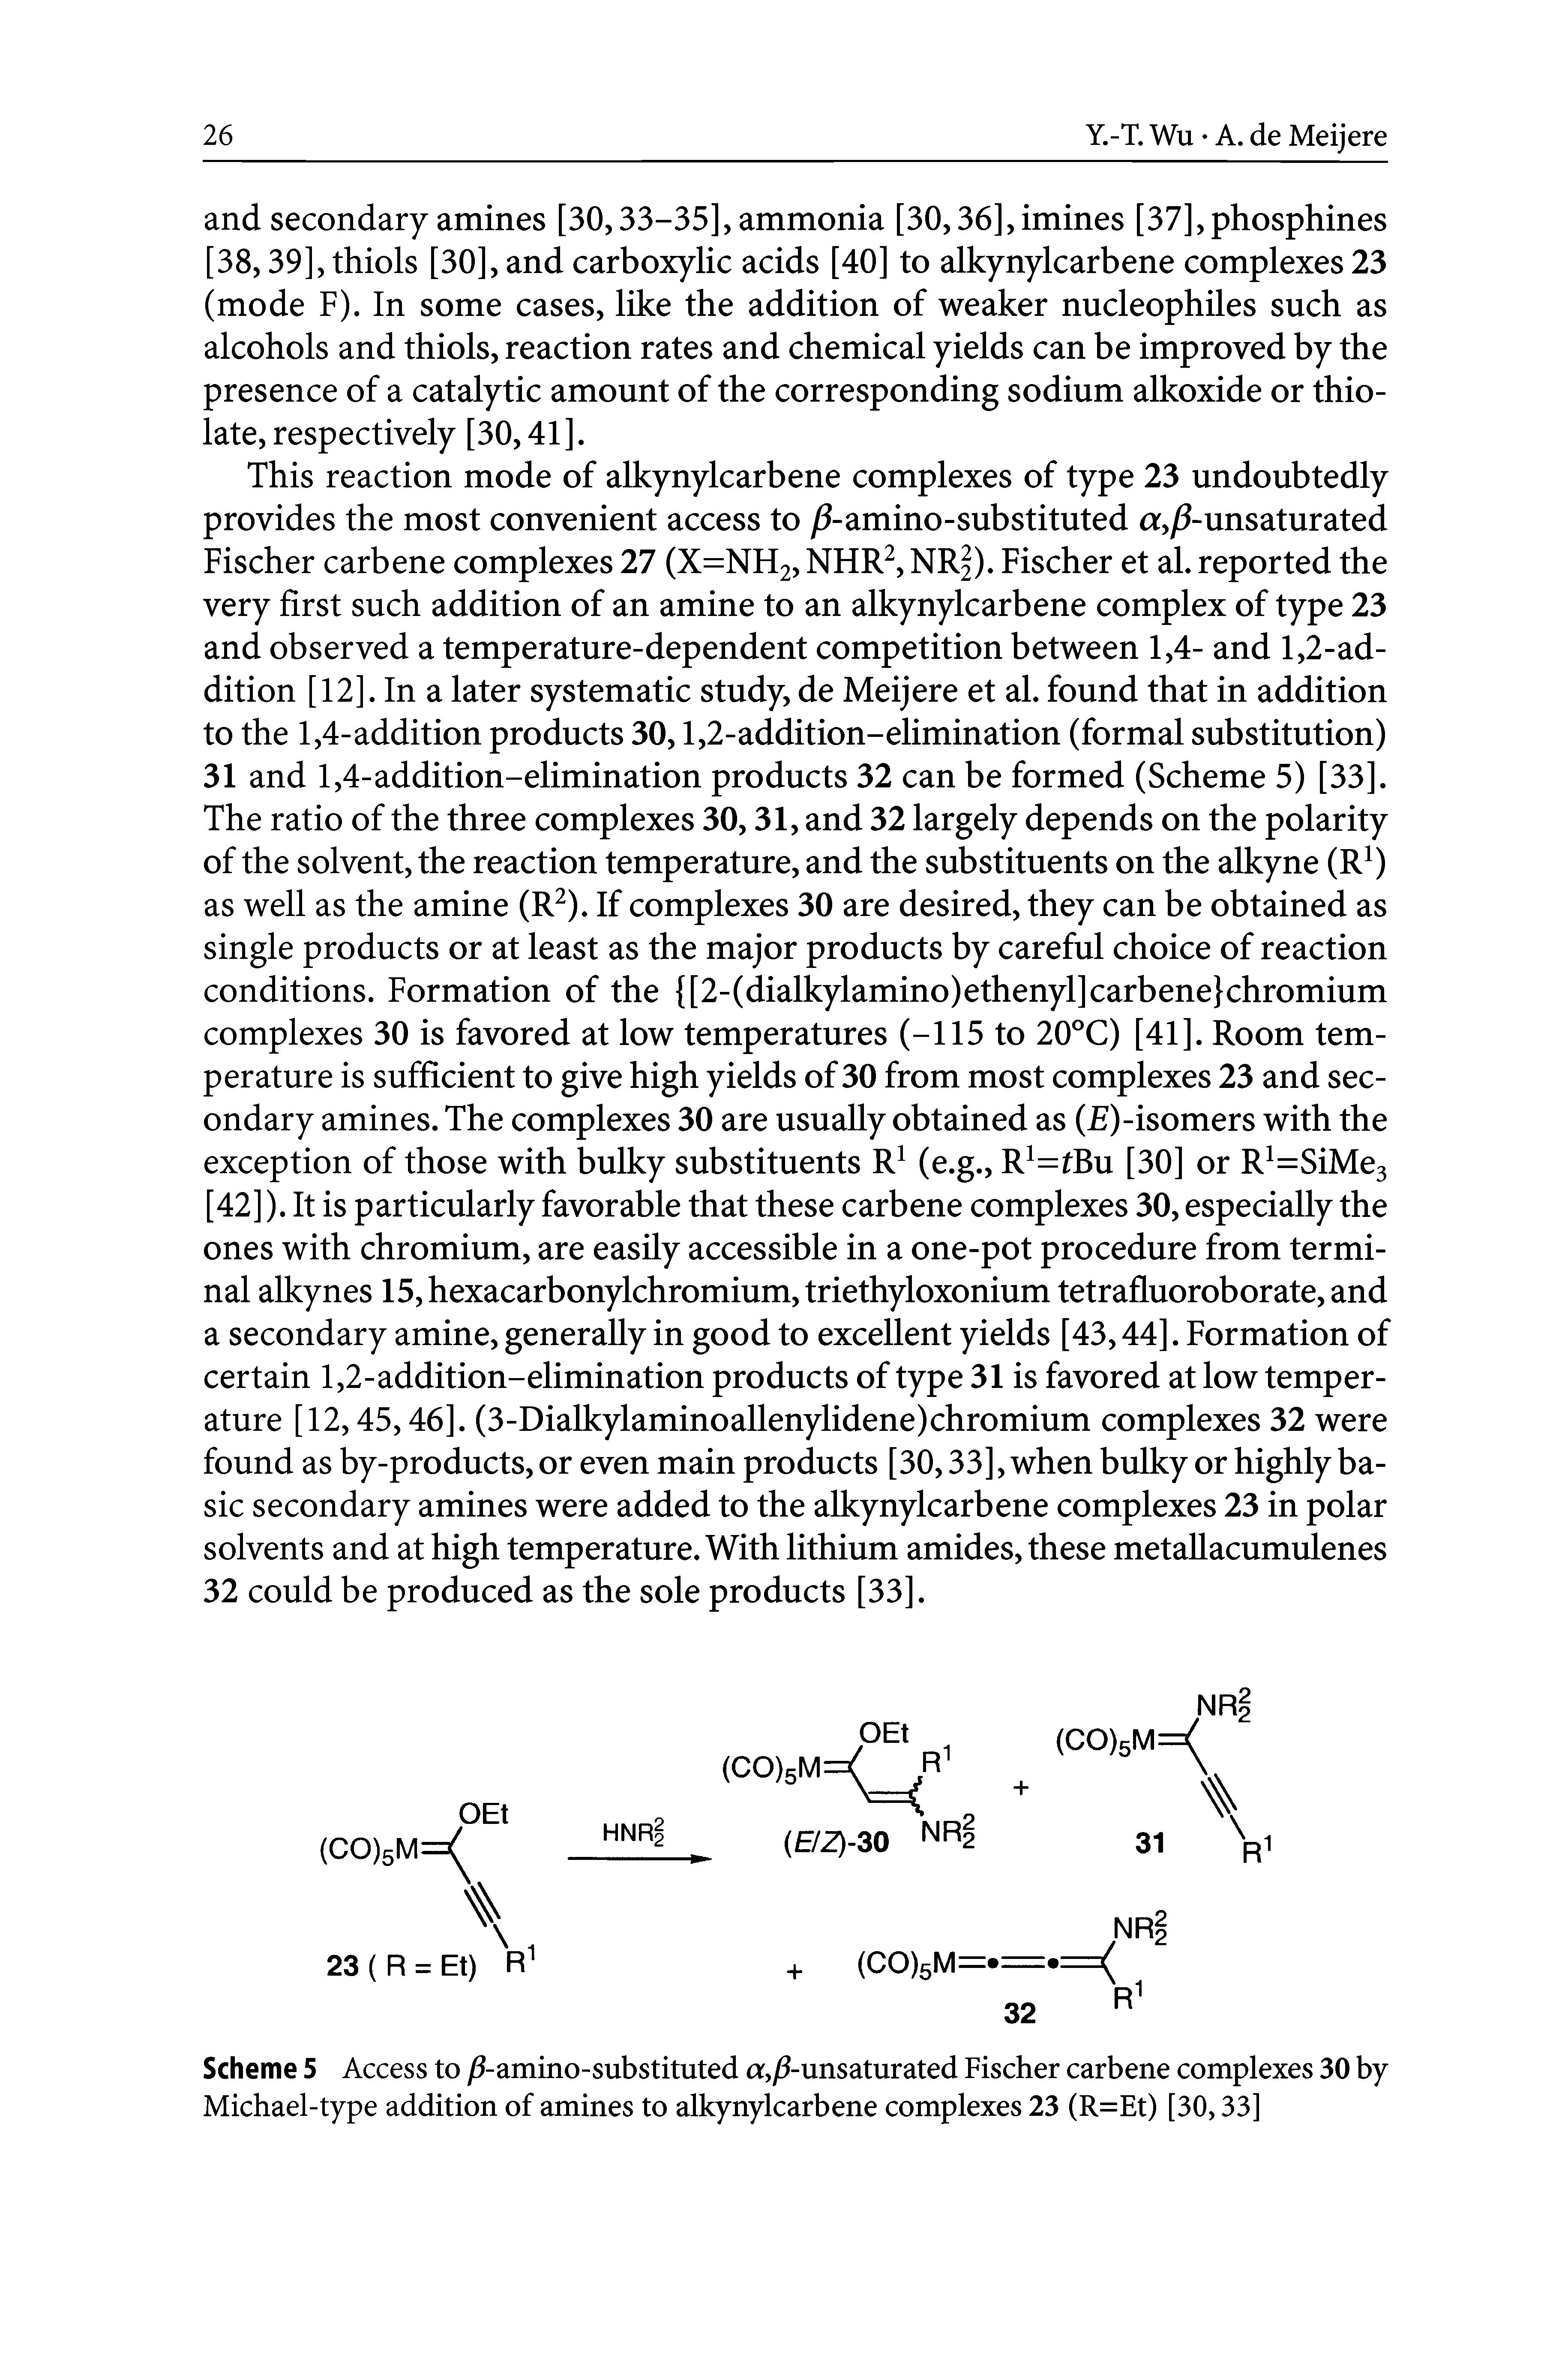 Scheme 5 Access to / -amino-substituted a,/ -unsaturated Fischer carbene complexes 30 by Michael-type addition of amines to alkynylcarbene complexes 23 (R=Et) [30,33]